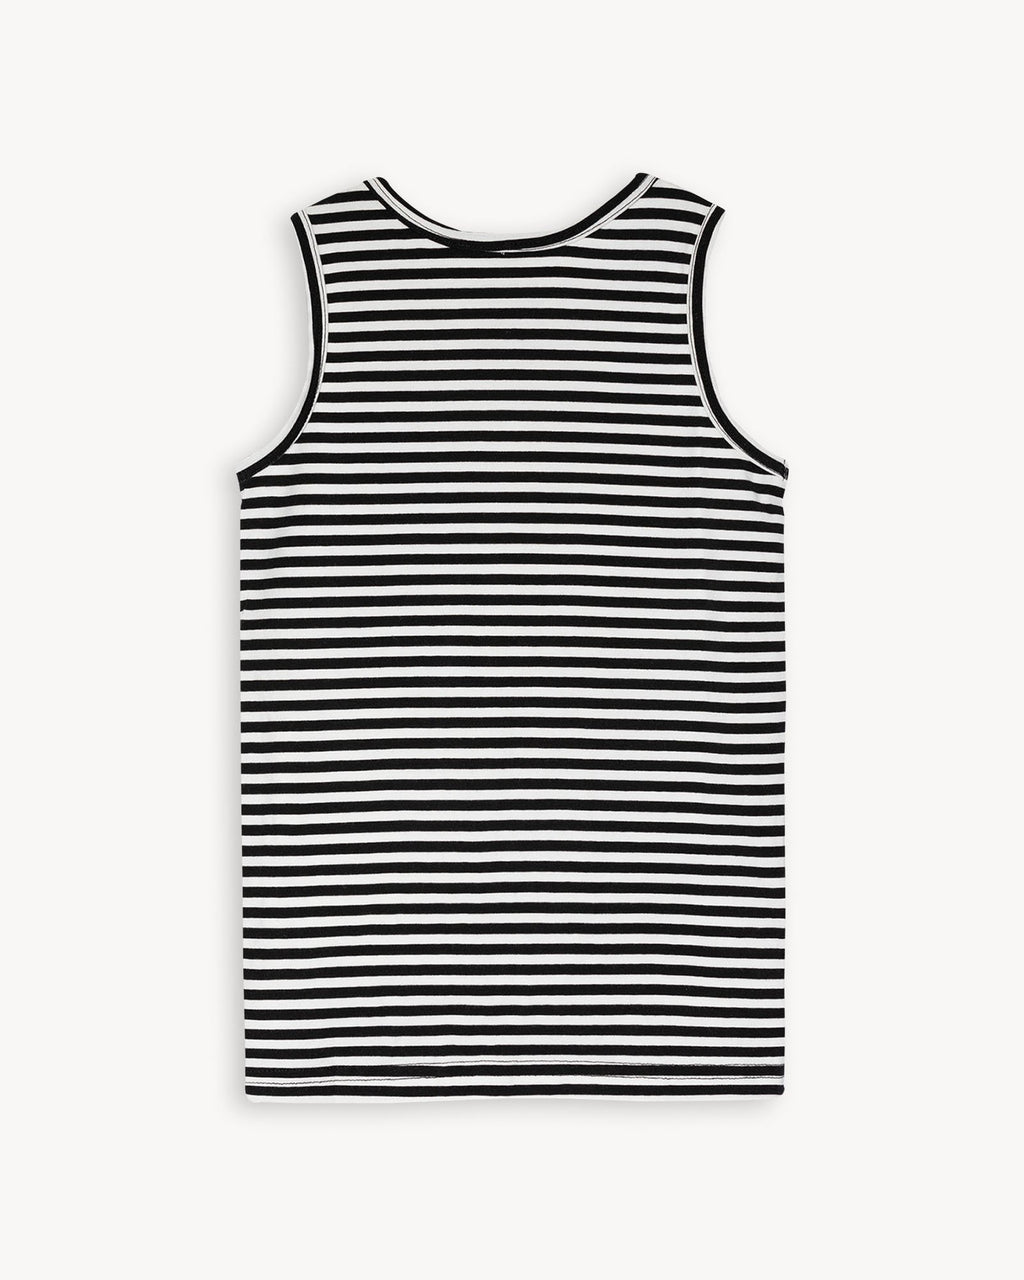 variant_2 | EN Black White Stripes Striped Underwear Undershirt Shirt Tanktop Girls Kids | DE Schwarz Weiß Gestreift Streifen Unterhemd Tanktop Mädchen Kinder Kids